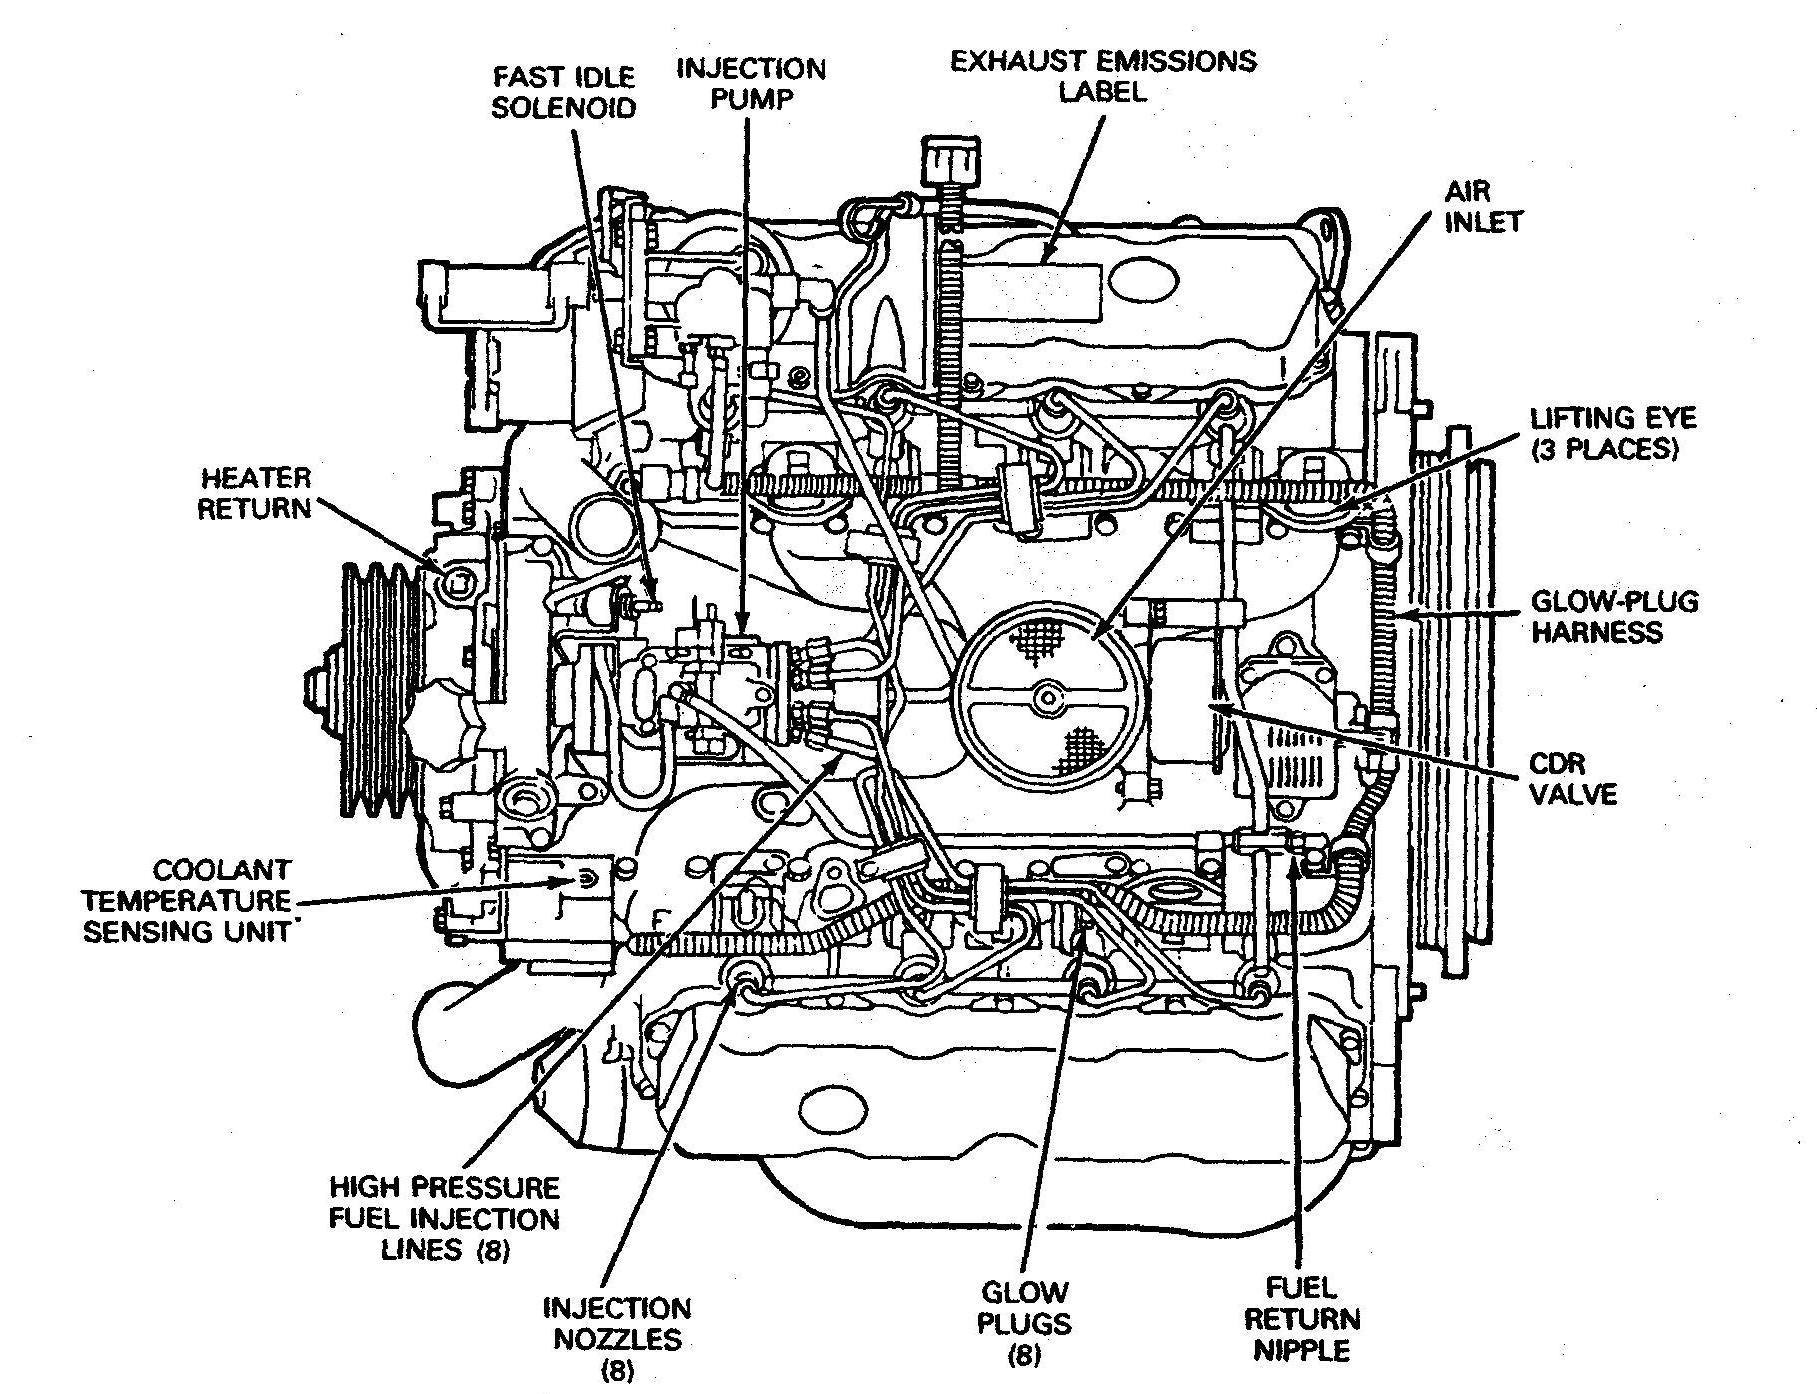 2004 3 8 mustang engine diagram wiring library rh 14 skriptoase de 2001  Mustang V6 Engine 2005 Mustang V6 Engine